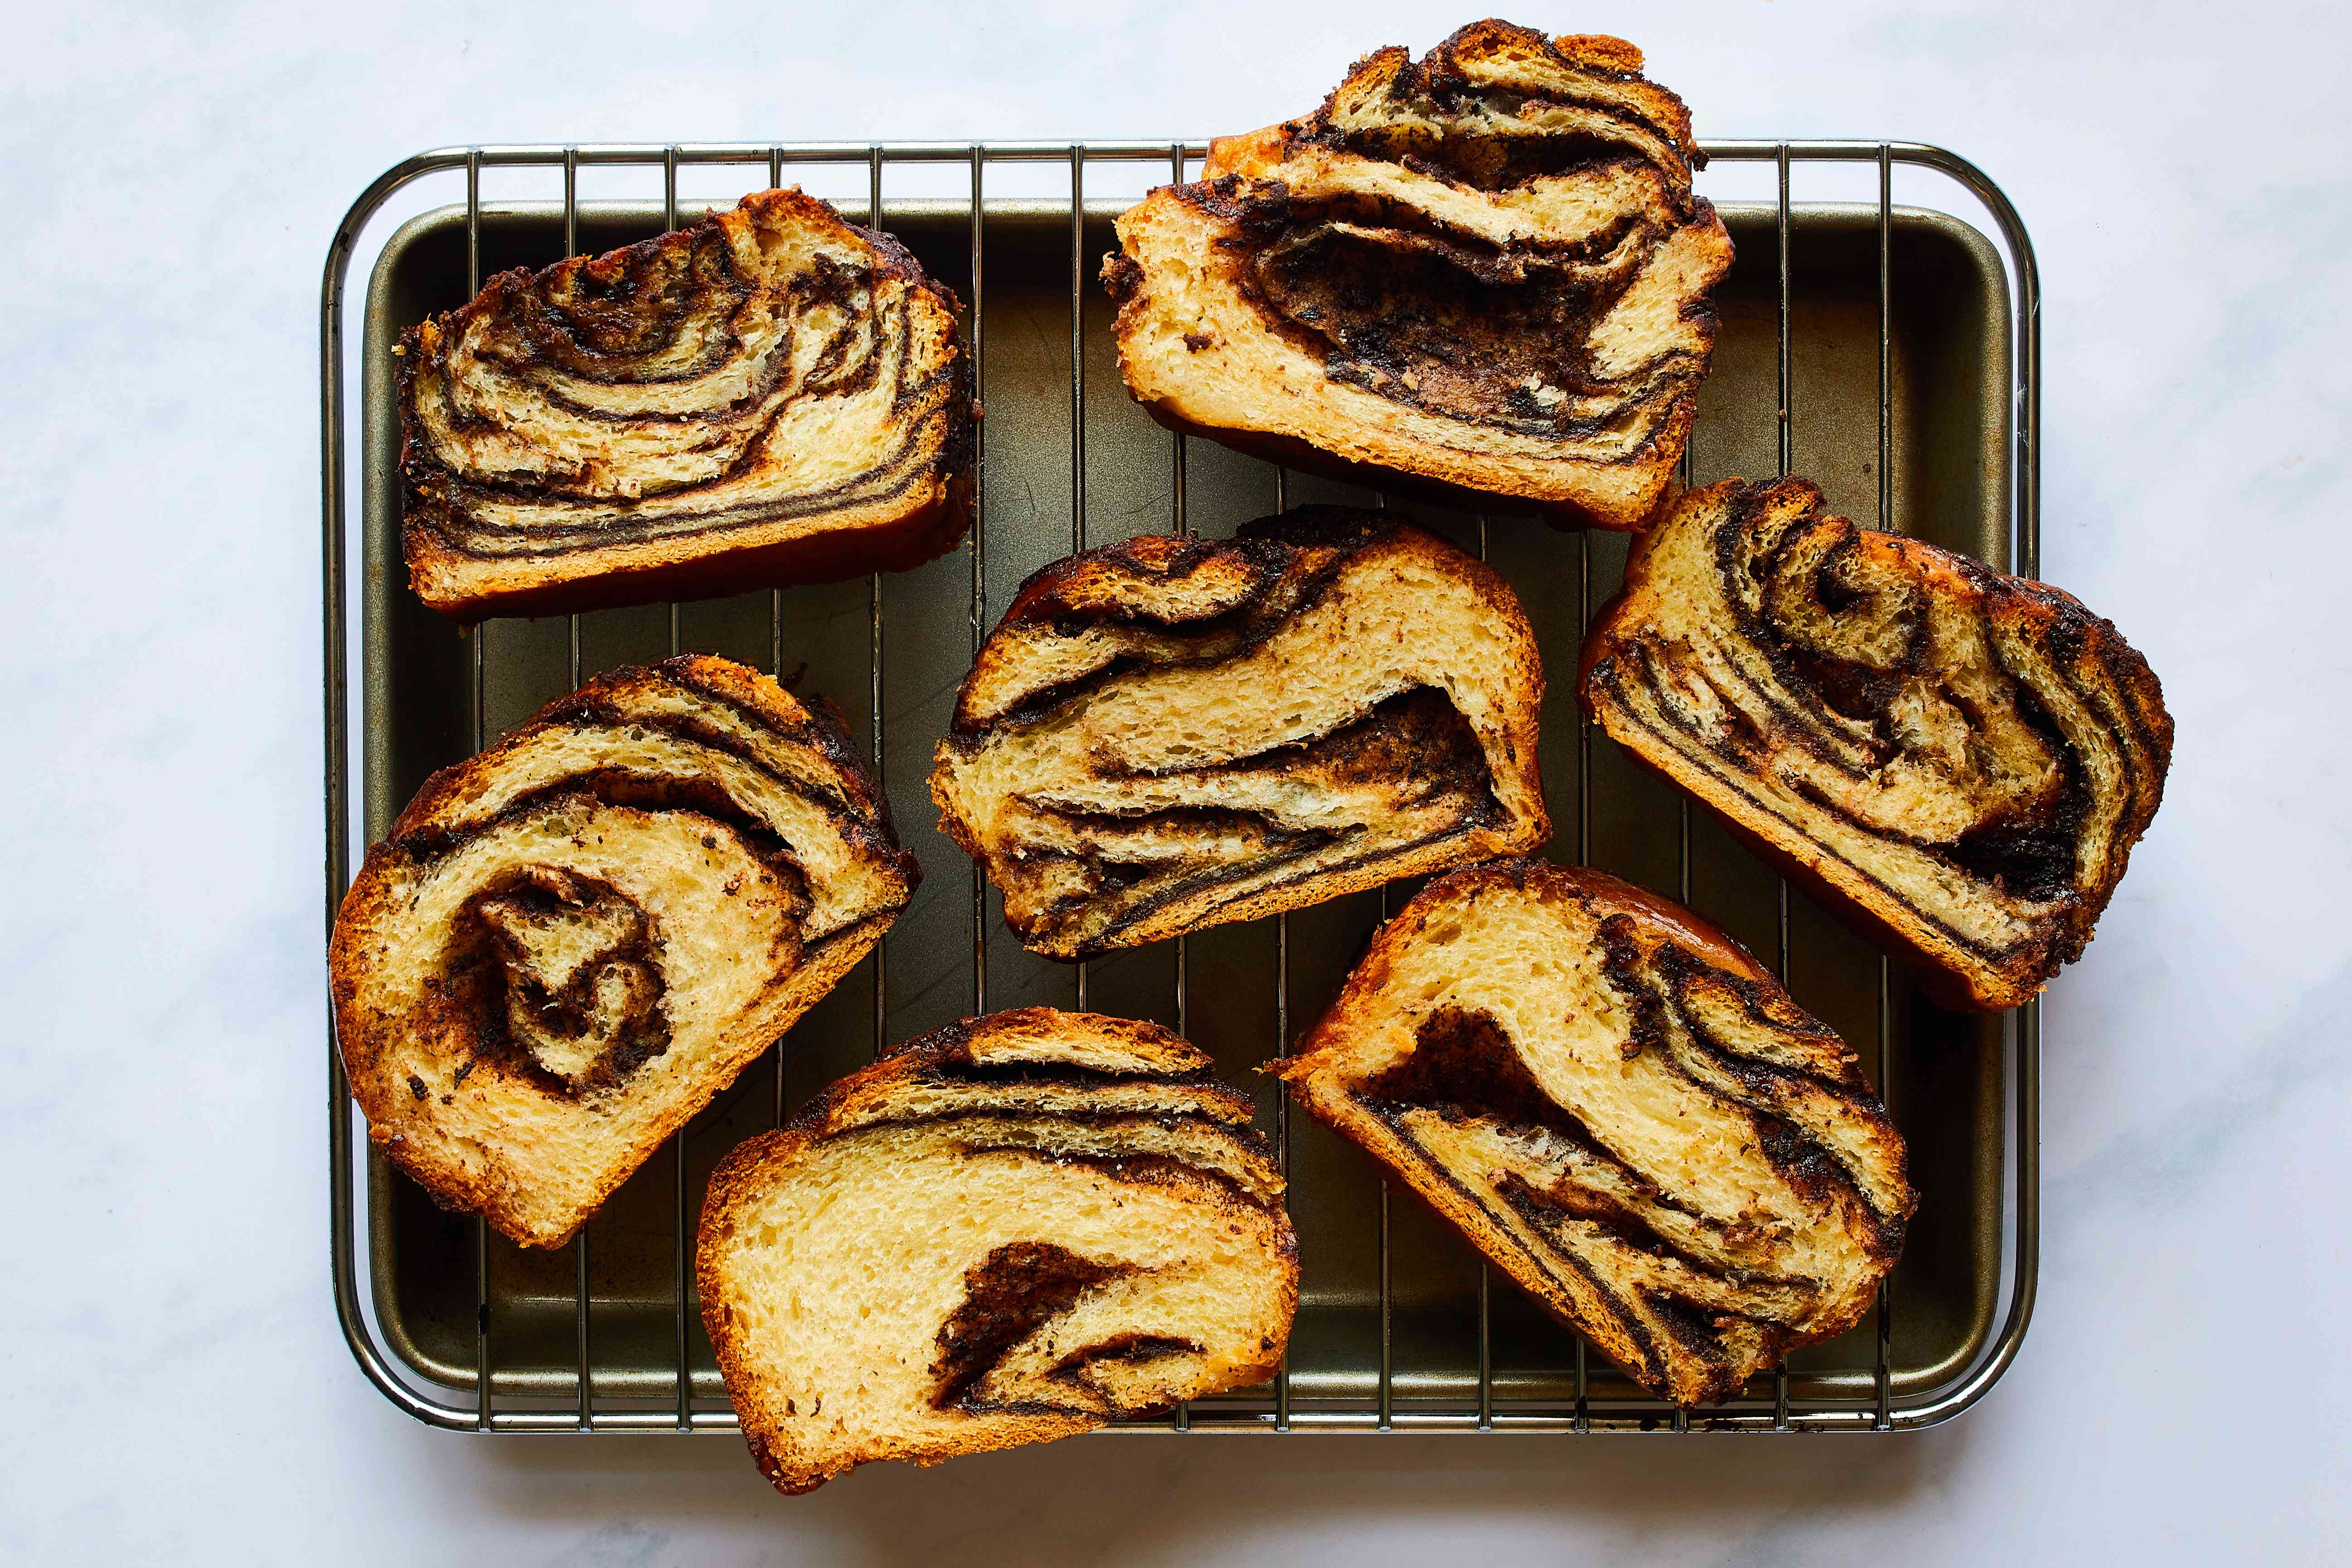 babka slices on rack to dry out